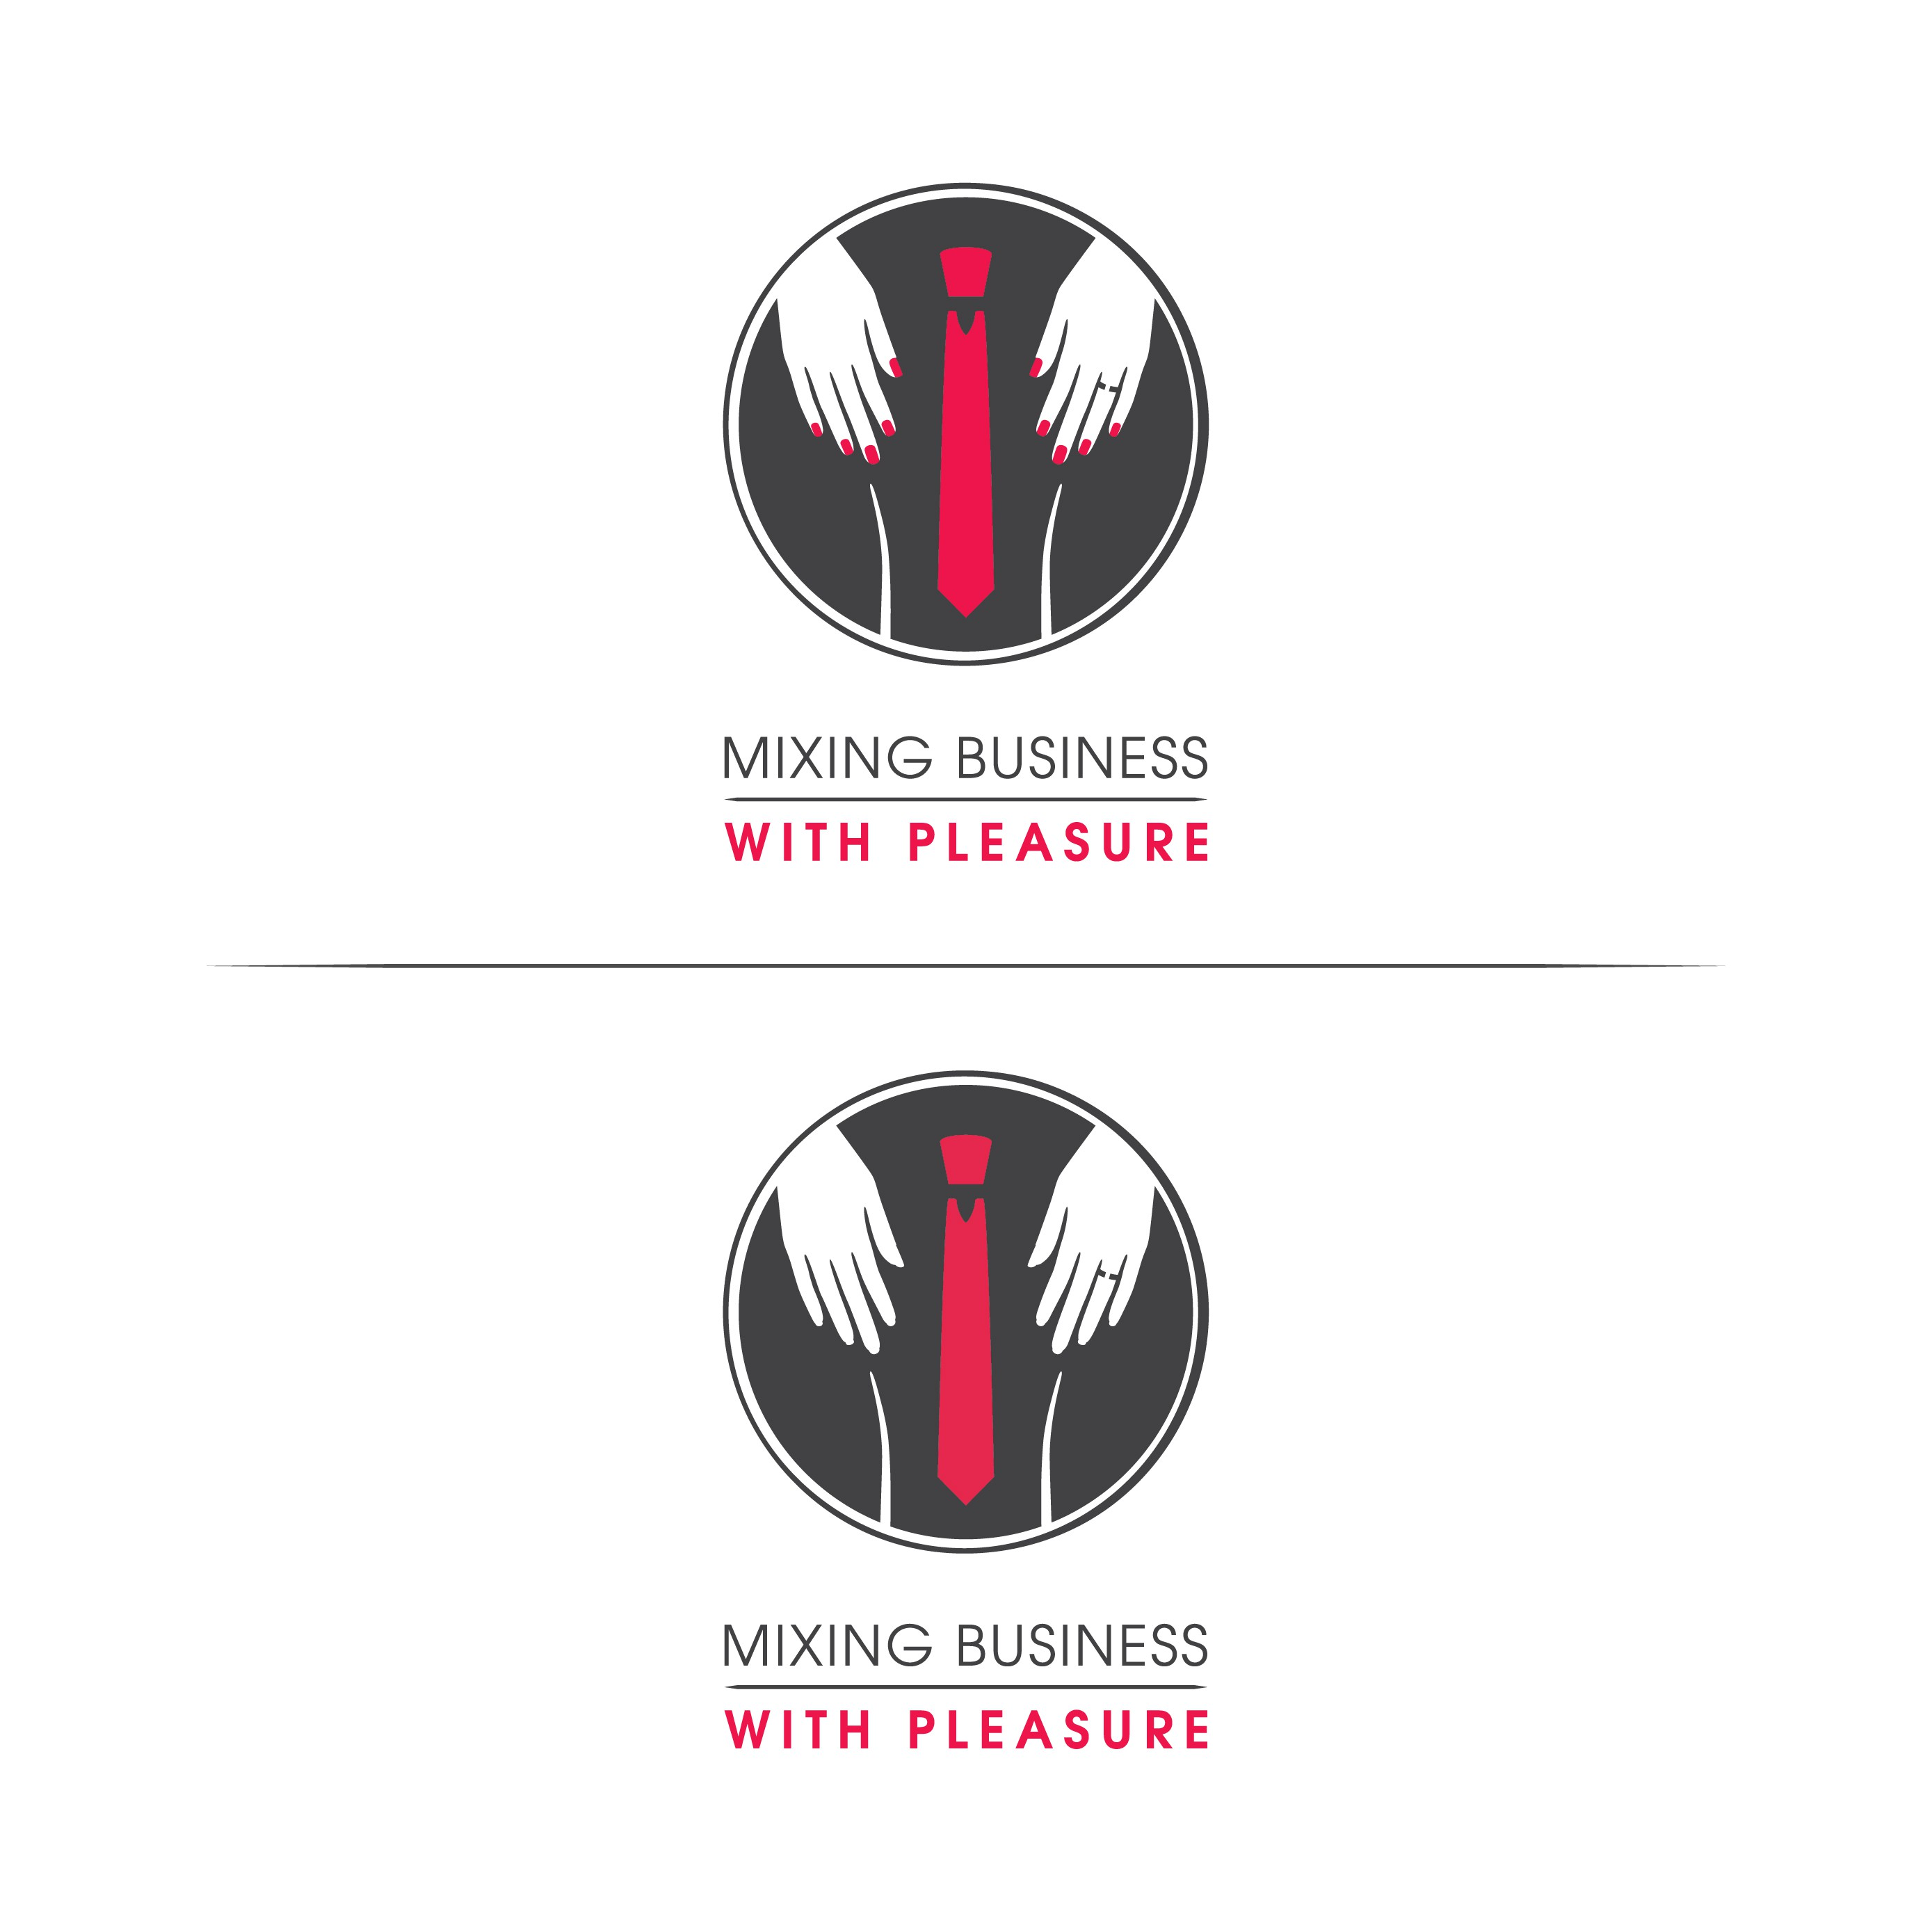 New Podcast In Need of Tongue-In-Cheek Logo Design